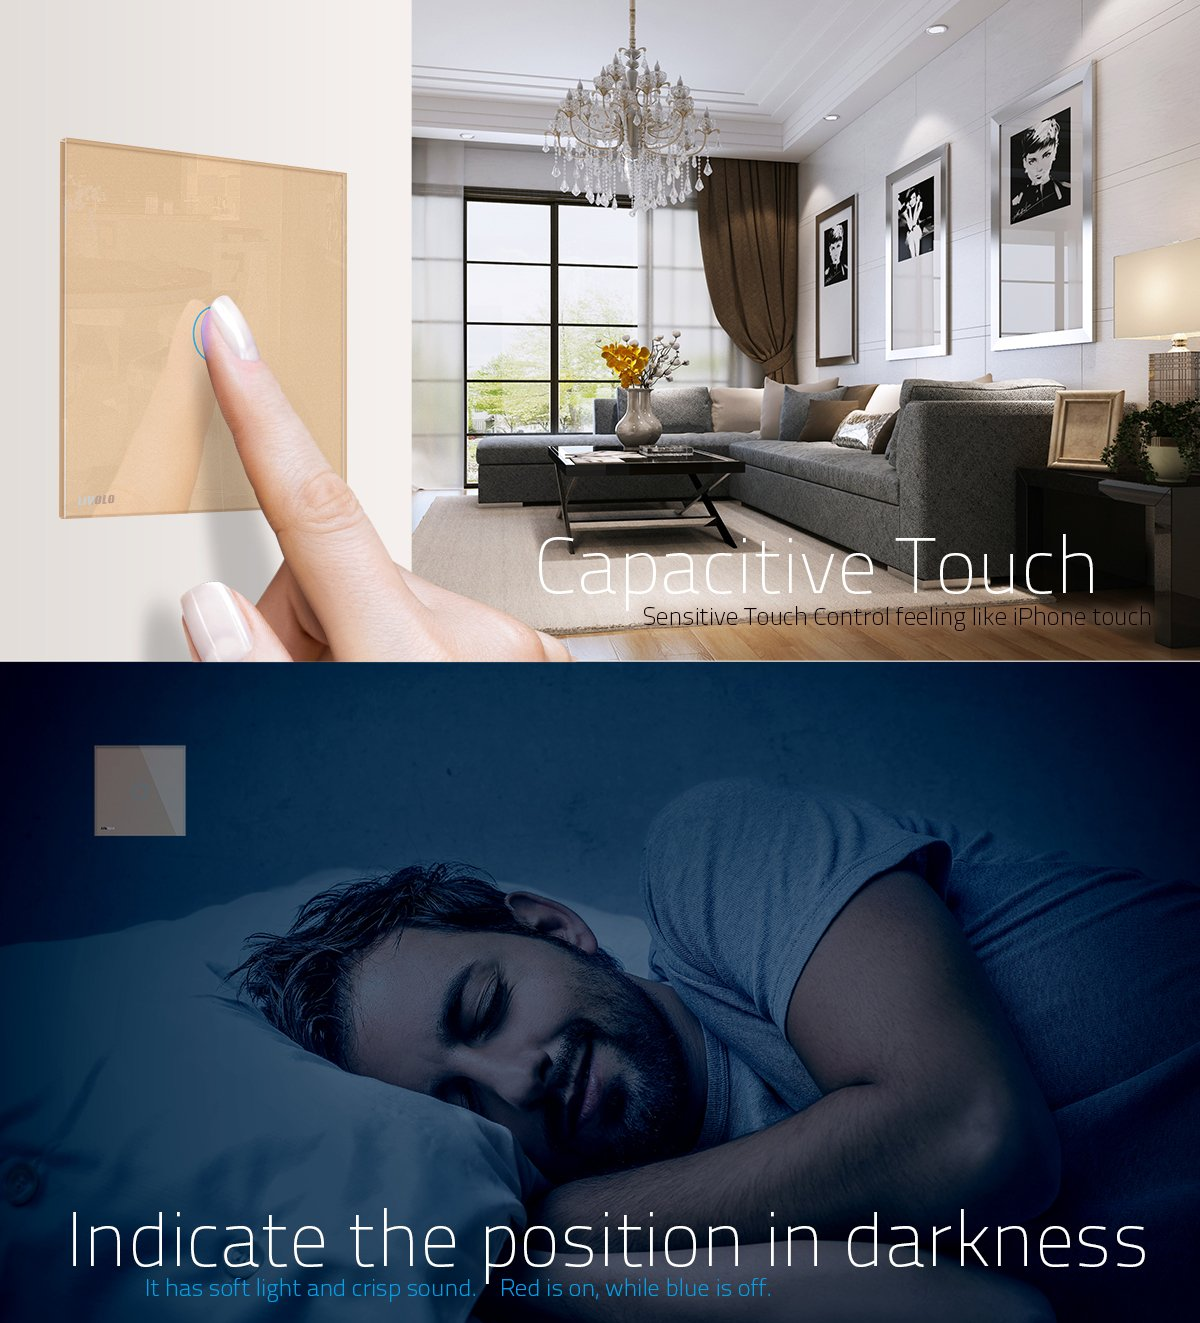 VL-C301R-61-R LIVOLO Smart Wireless Remote Control Light Switch White with LED Indicator with Tempered Glass Panel Wall Touch Light Switch 1 Gang 1 Way